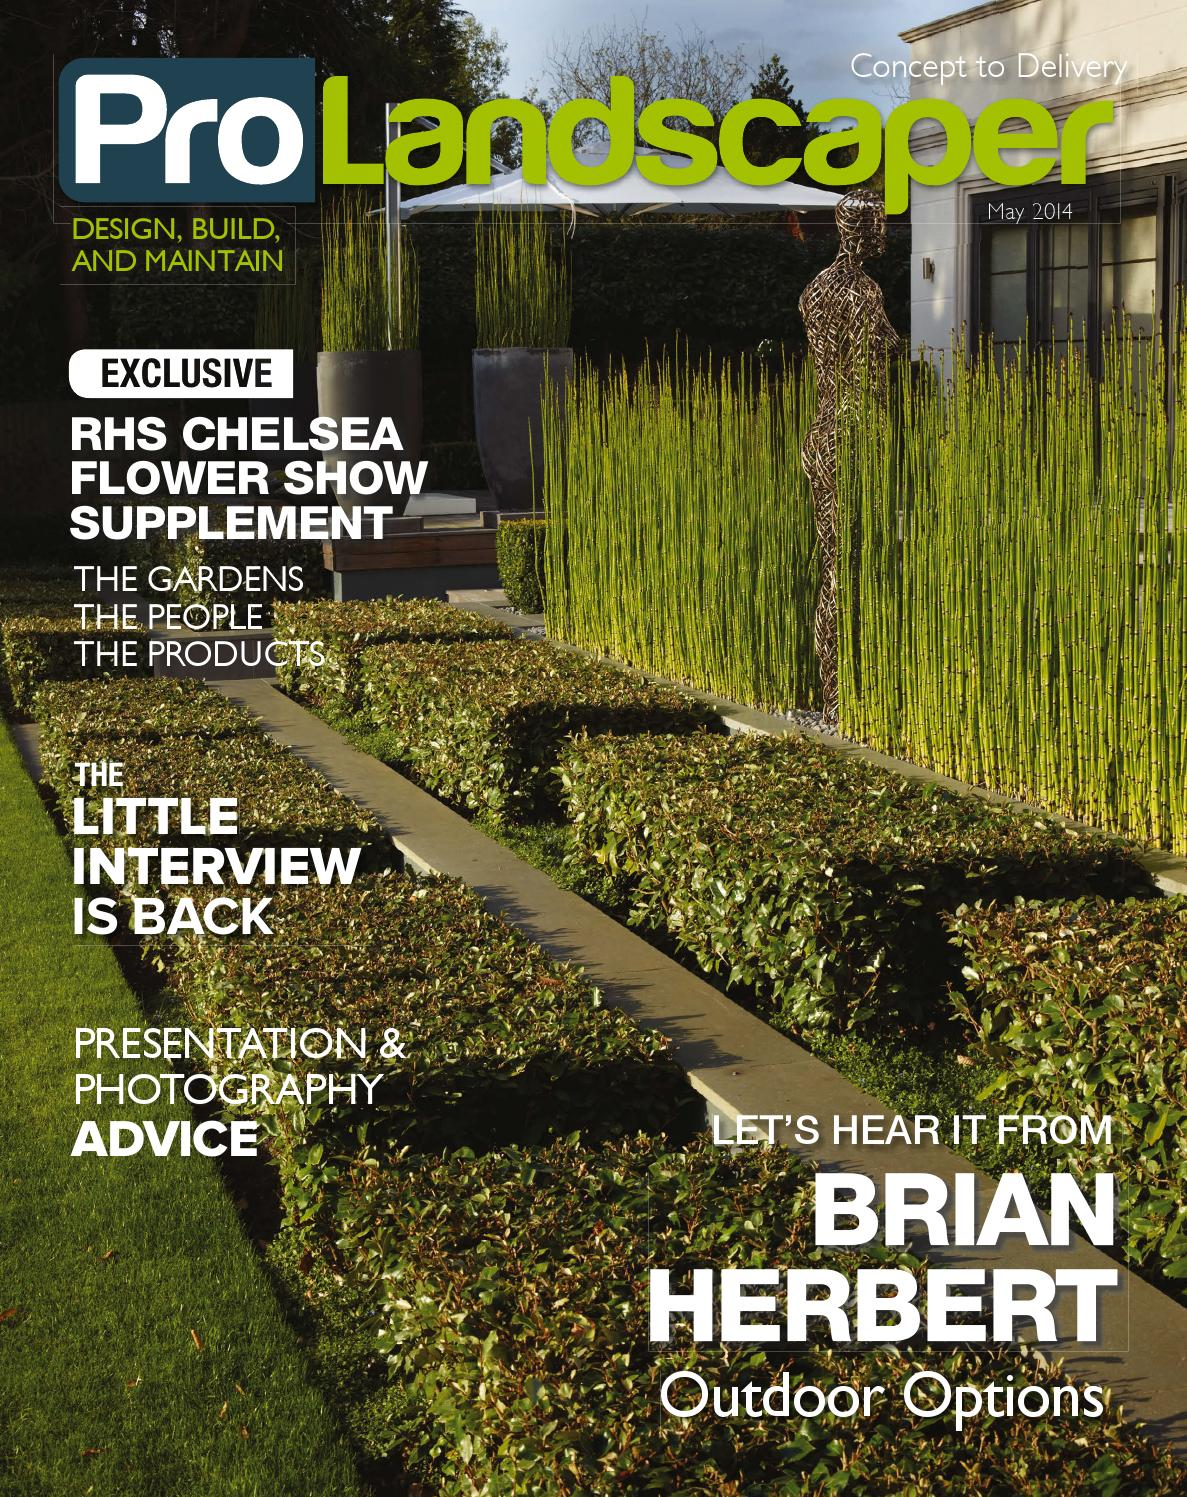 Pro Landscaper May 2014 by Eljays44 - issuu